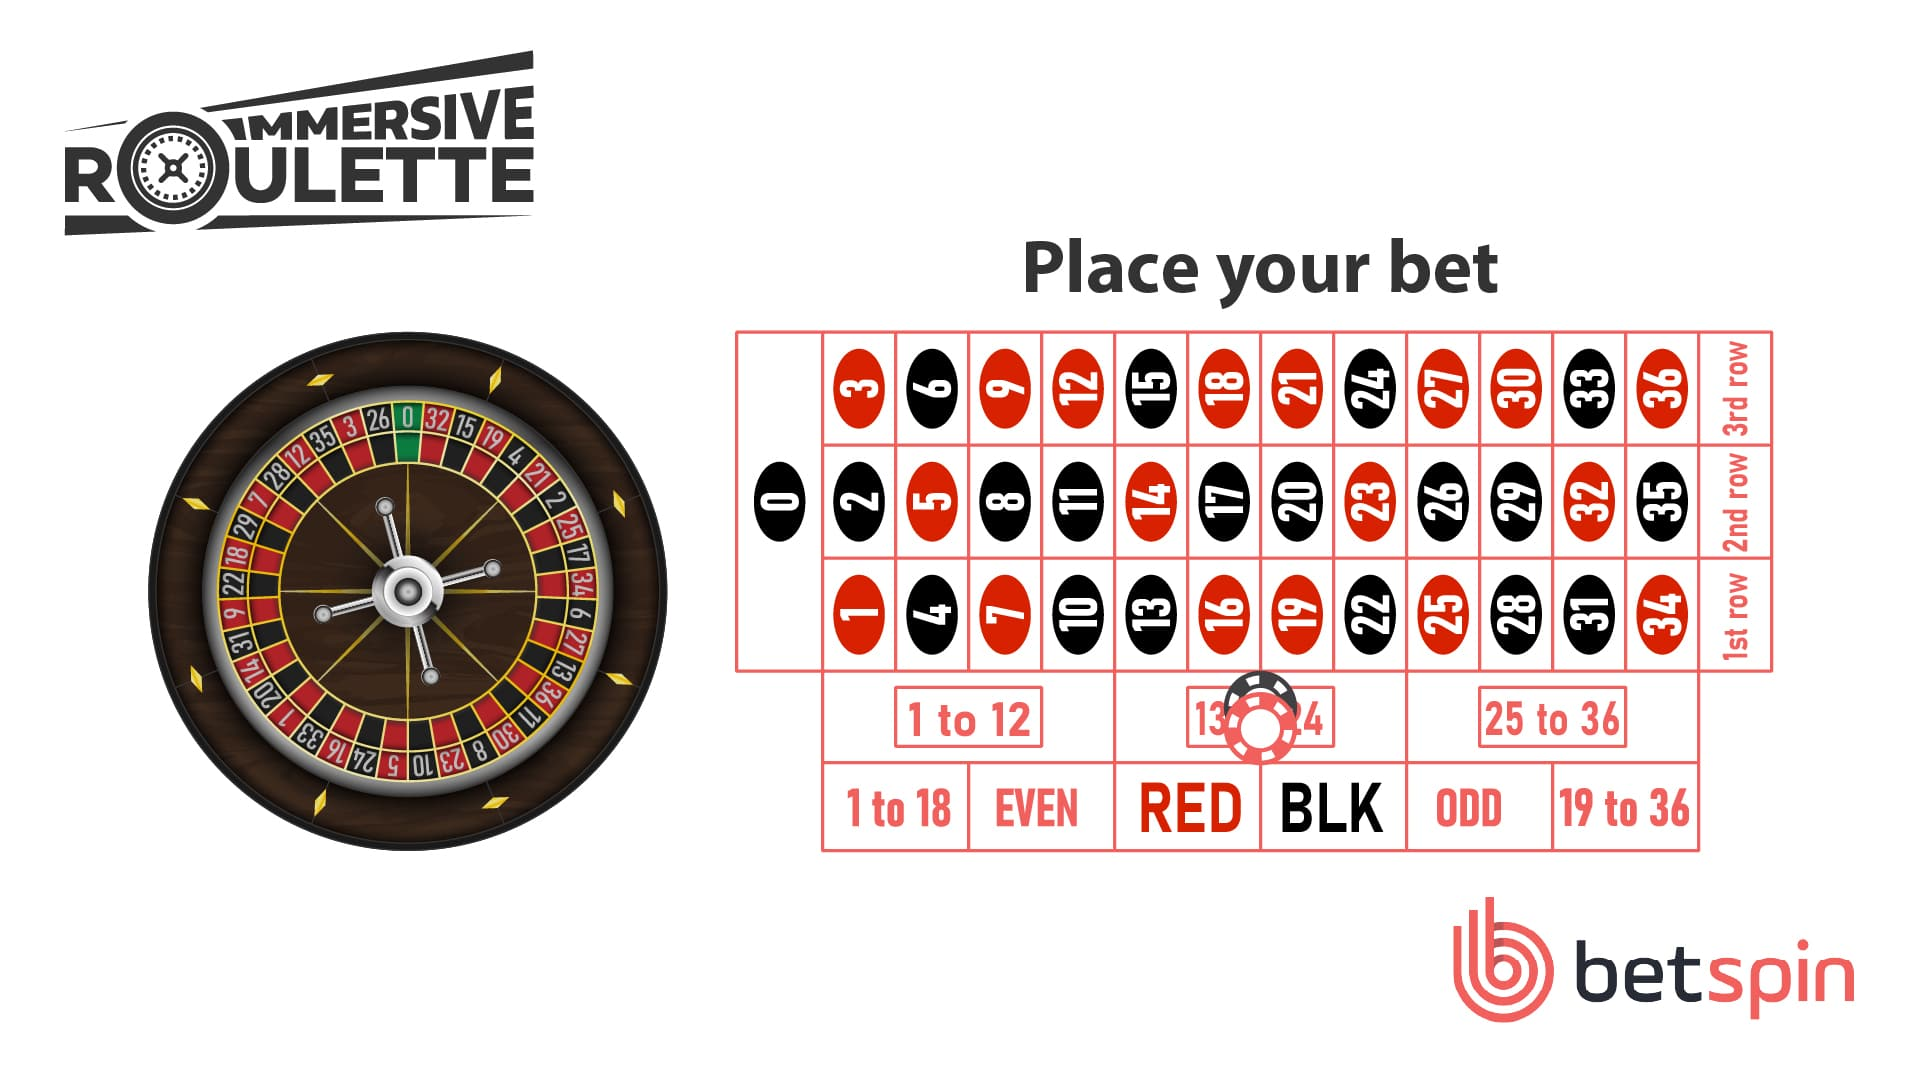 Immersive Roulette Step 2